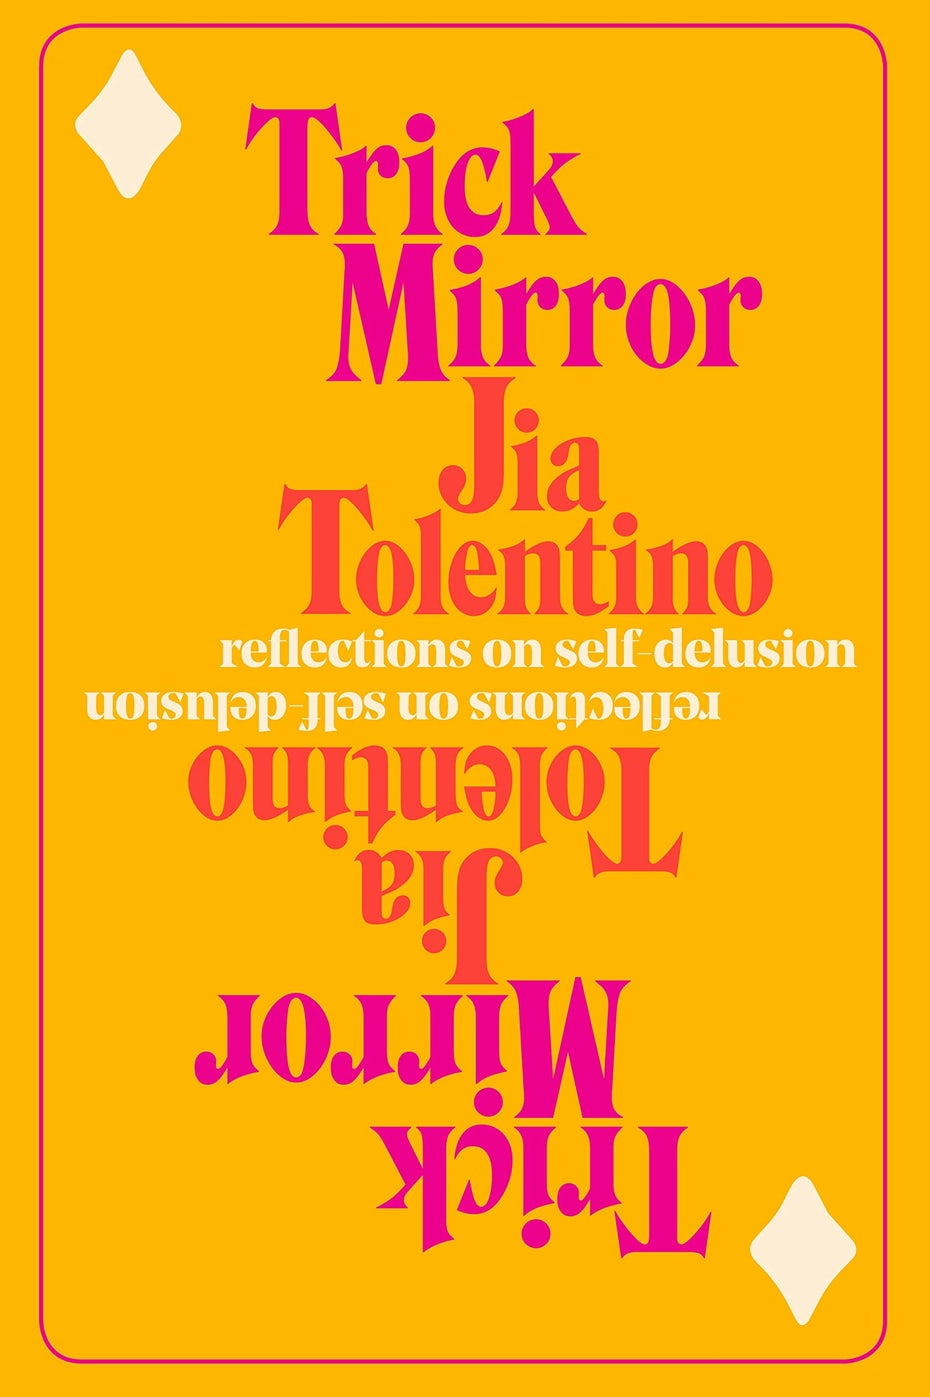 Book cover trends 2020 example with mirrored, pink type